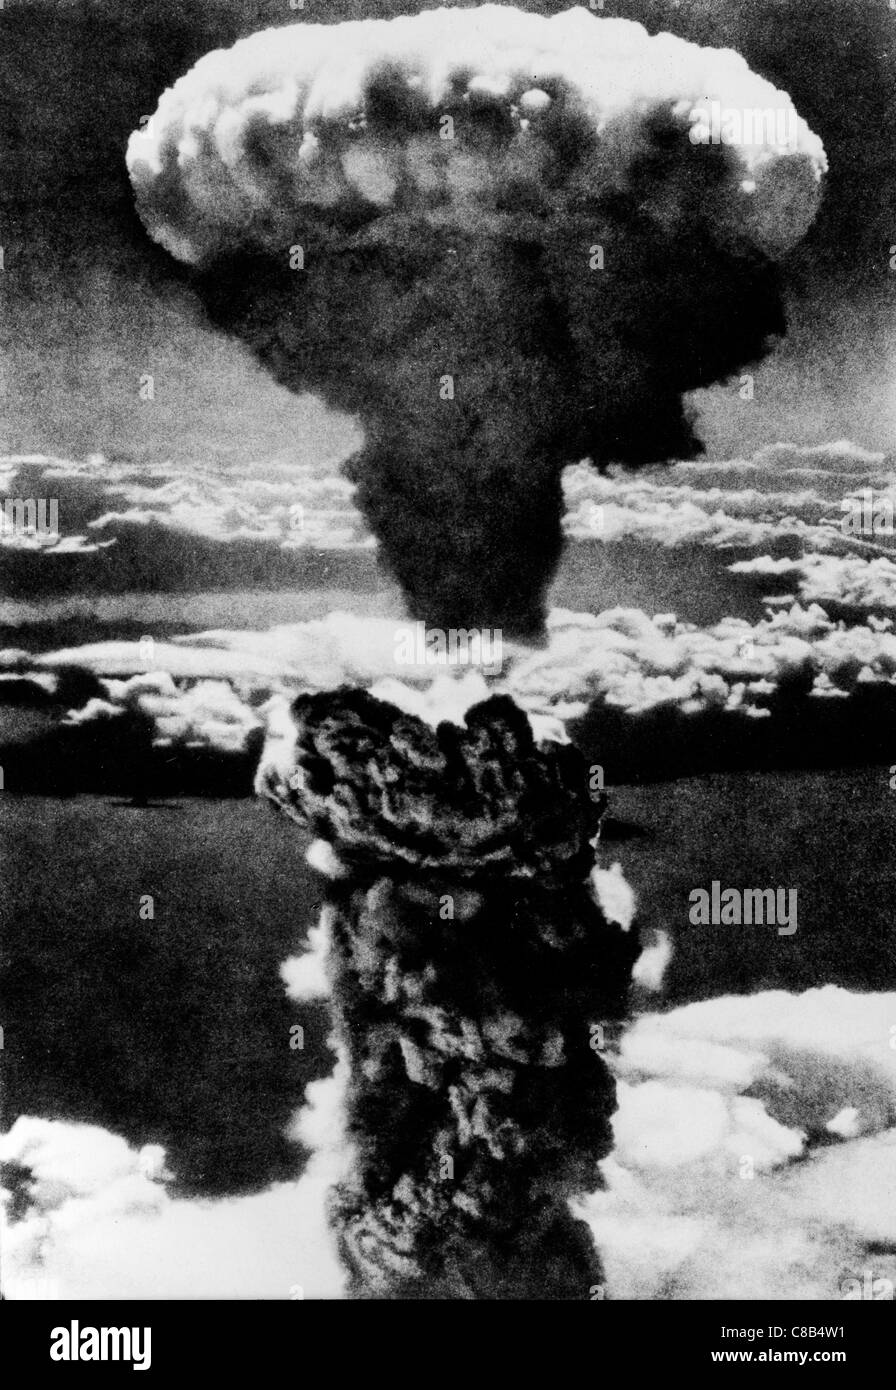 Explosion atomique à Hiroshima,1945 Photo Stock